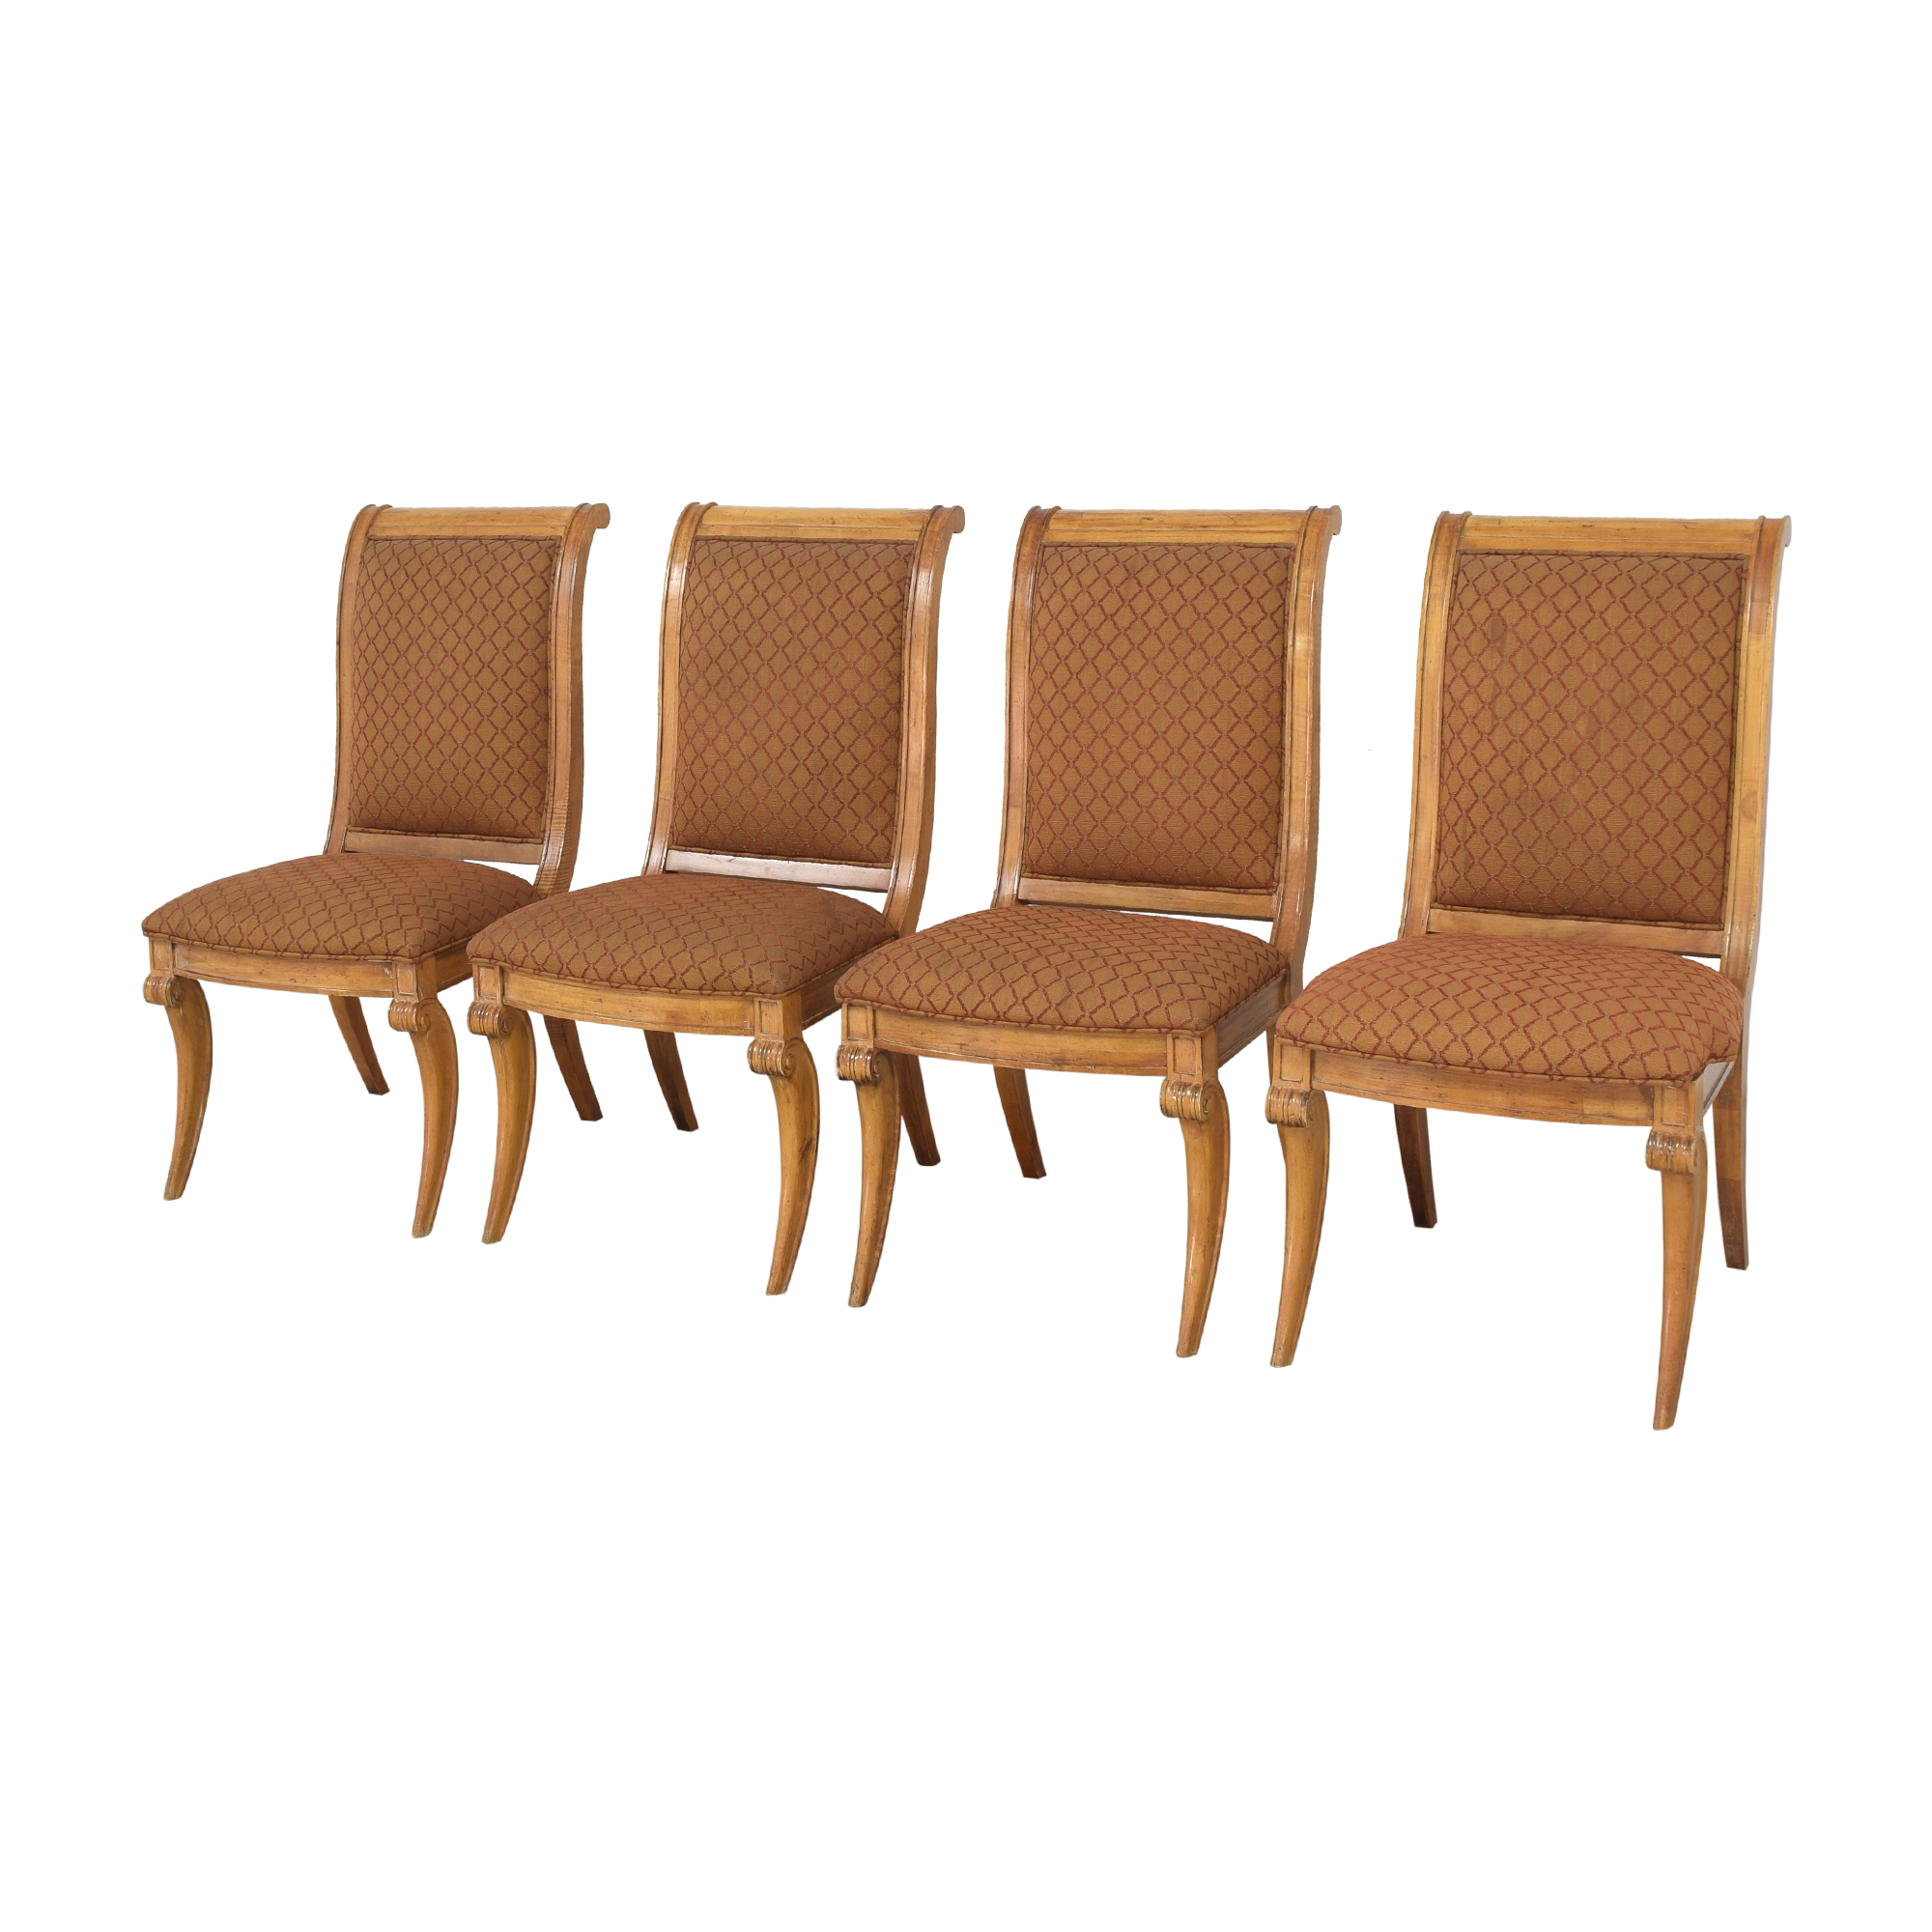 buy Century Furniture Century Furniture Upholstered Dining Chairs online